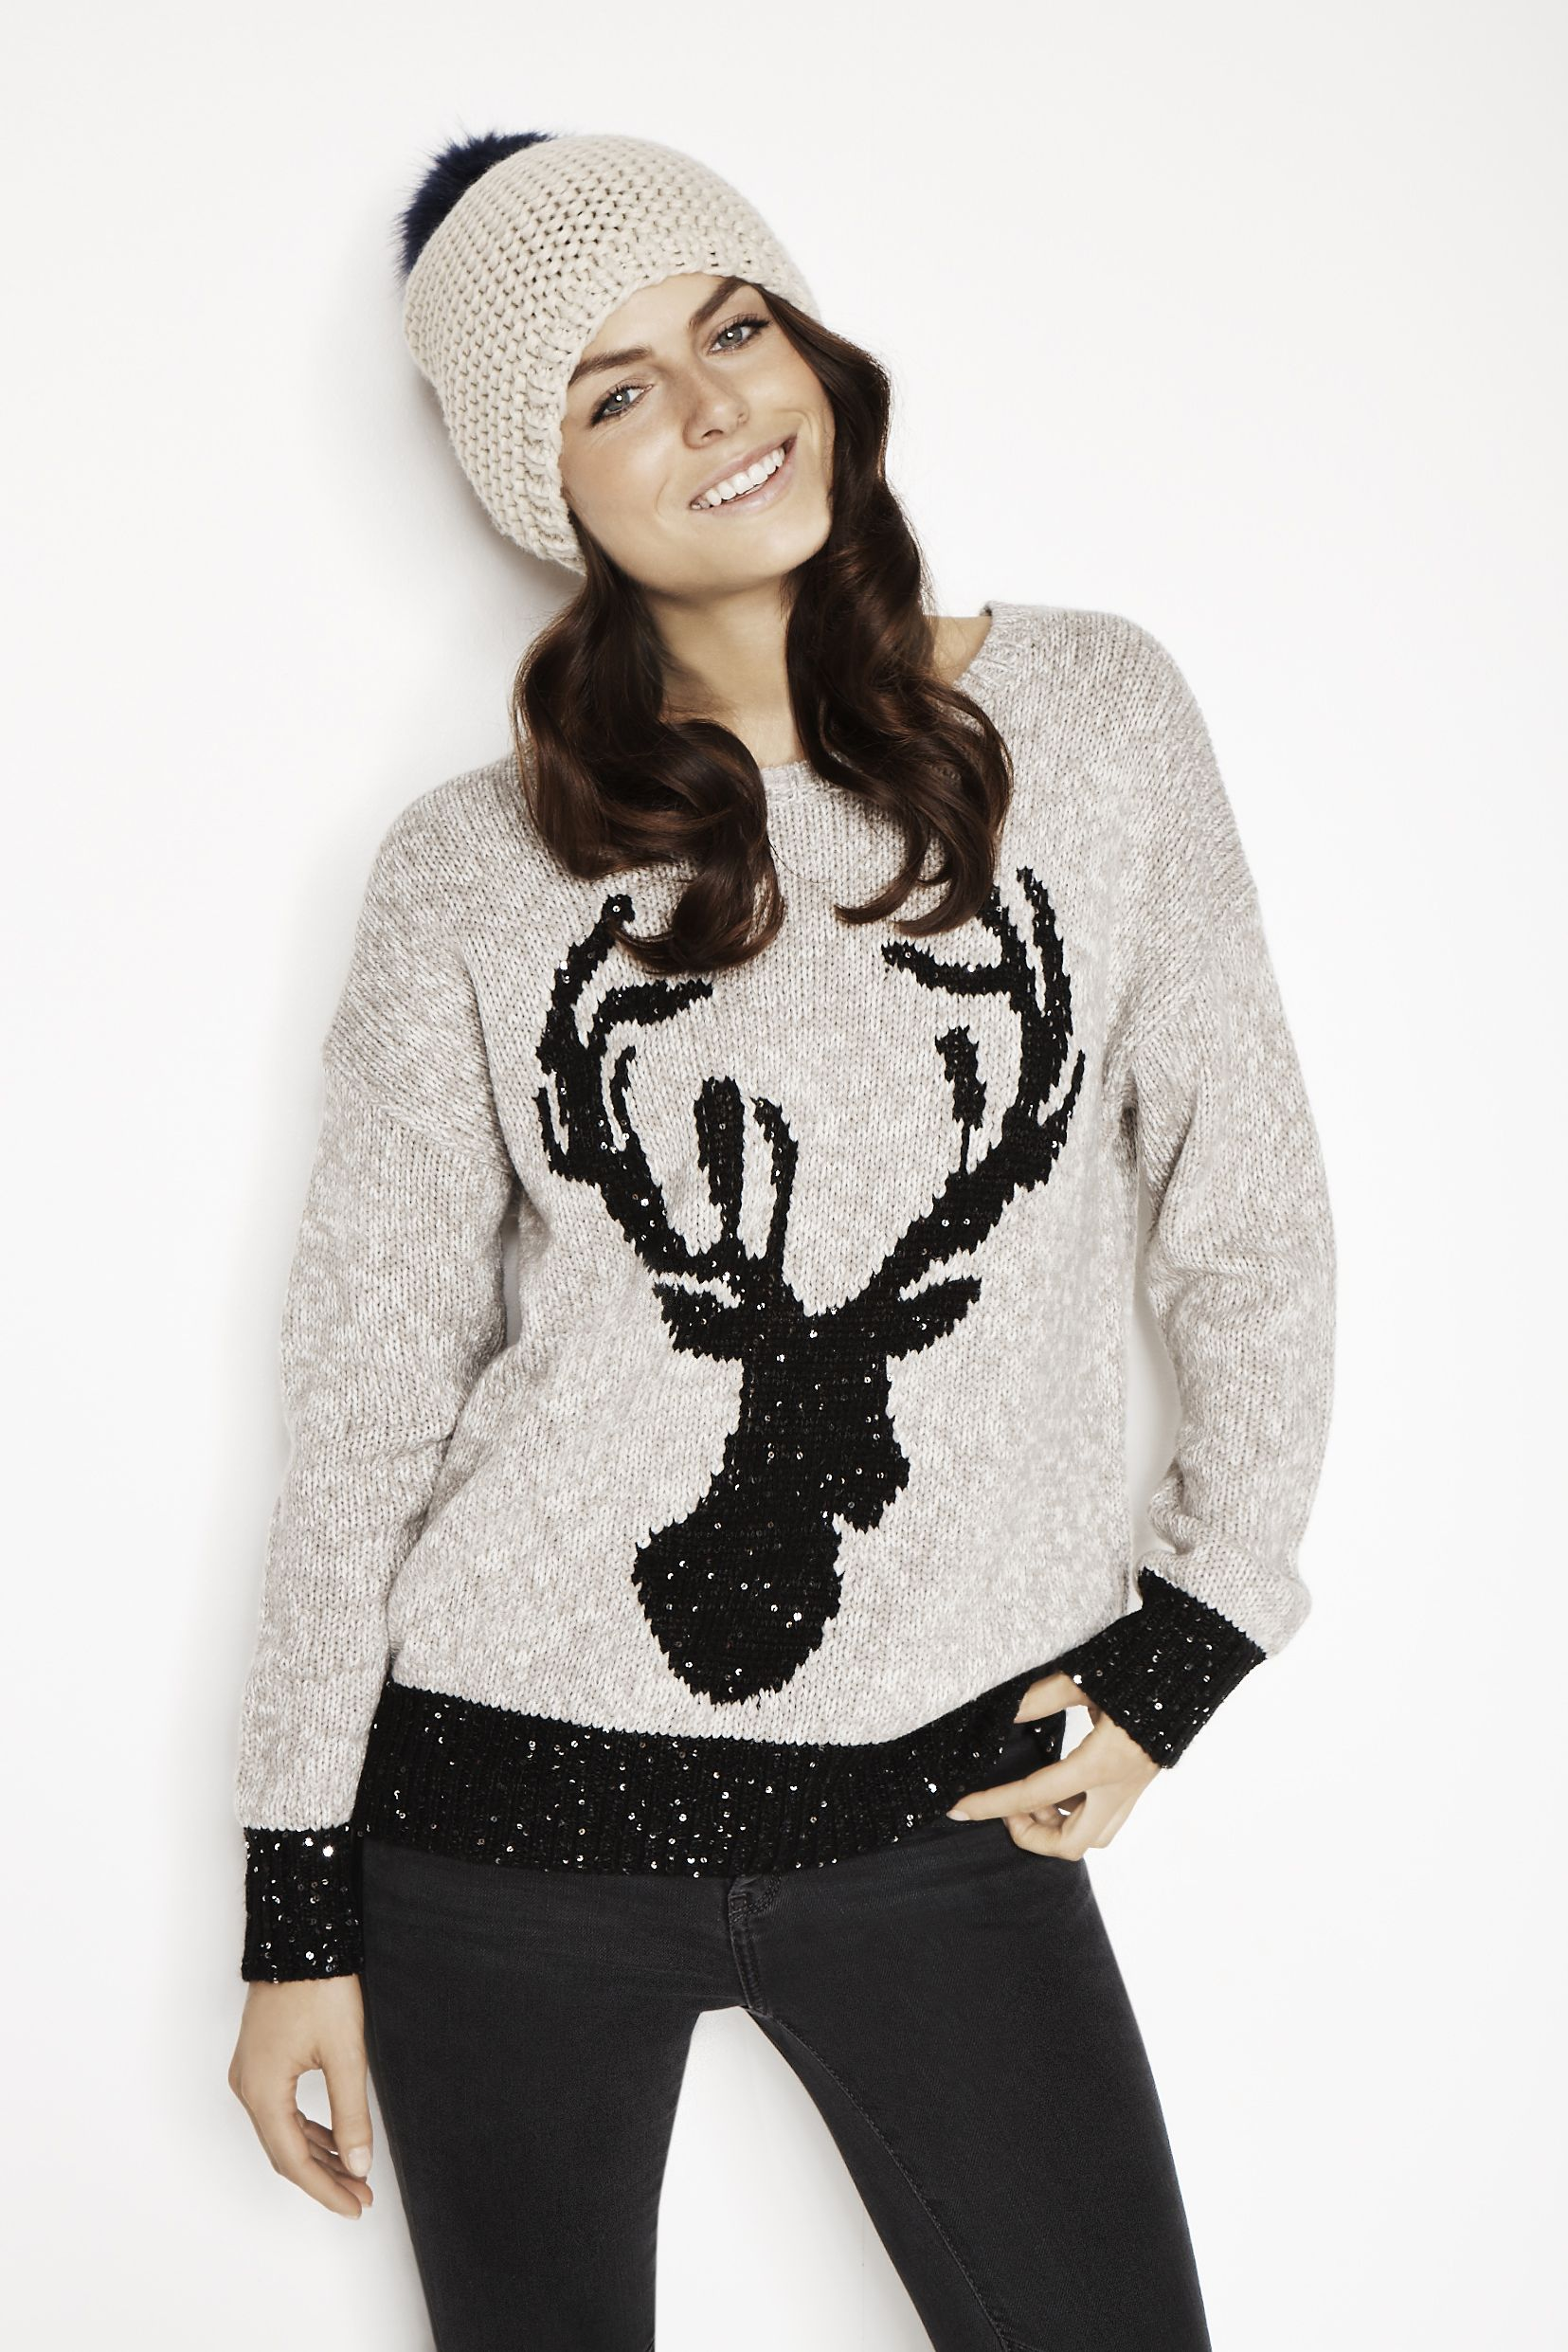 384a4e4dd58 Go for a more classy Christmas jumper | Christmas-ify your look ...